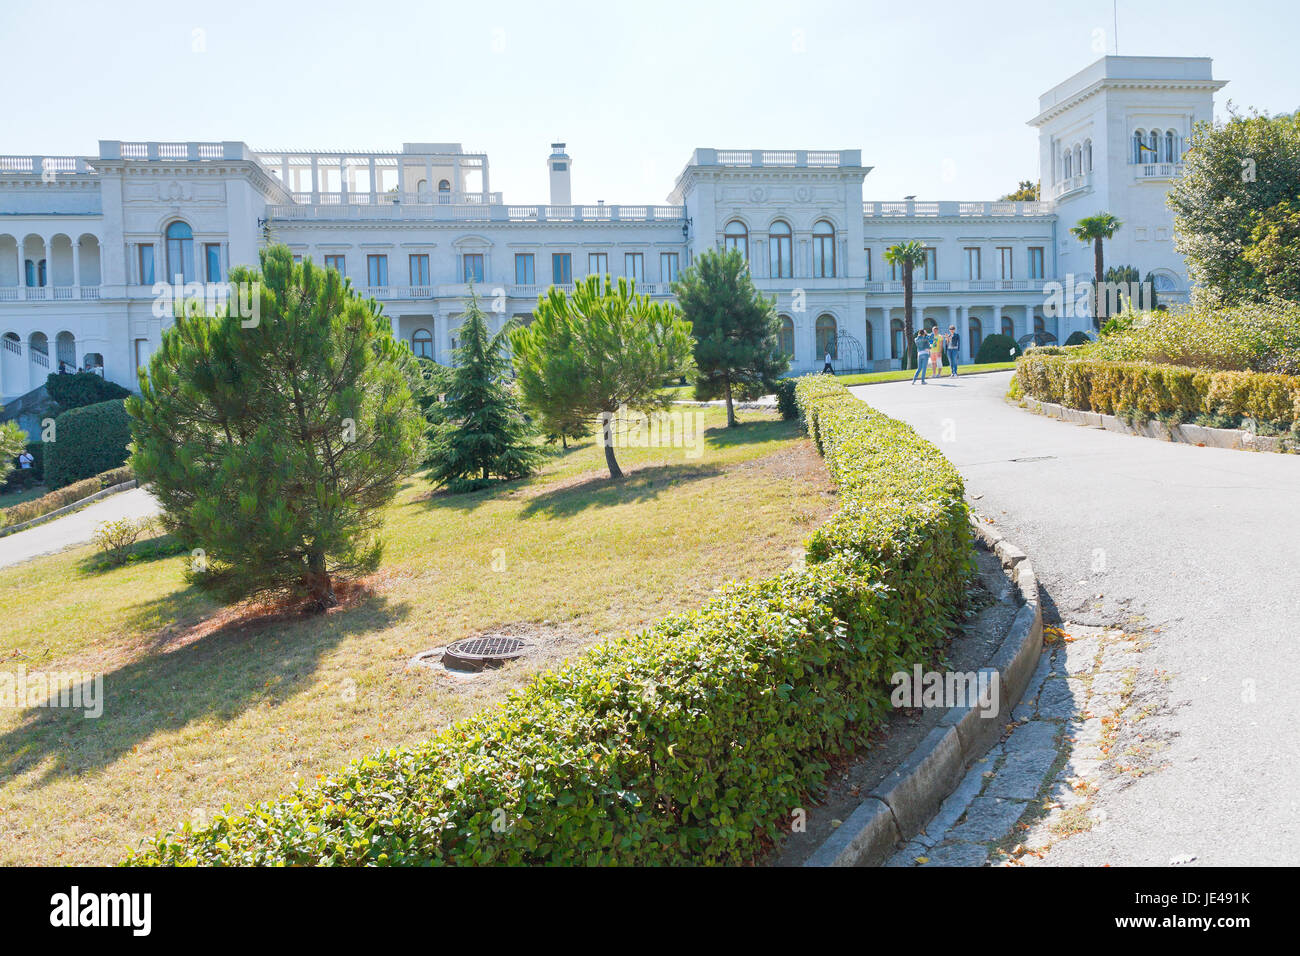 YALTA, RUSSIA - SEPTEMBER 28, 2014: people in park of Grand Livadia Palace in Crimea. Livadia estate was summer - Stock Image